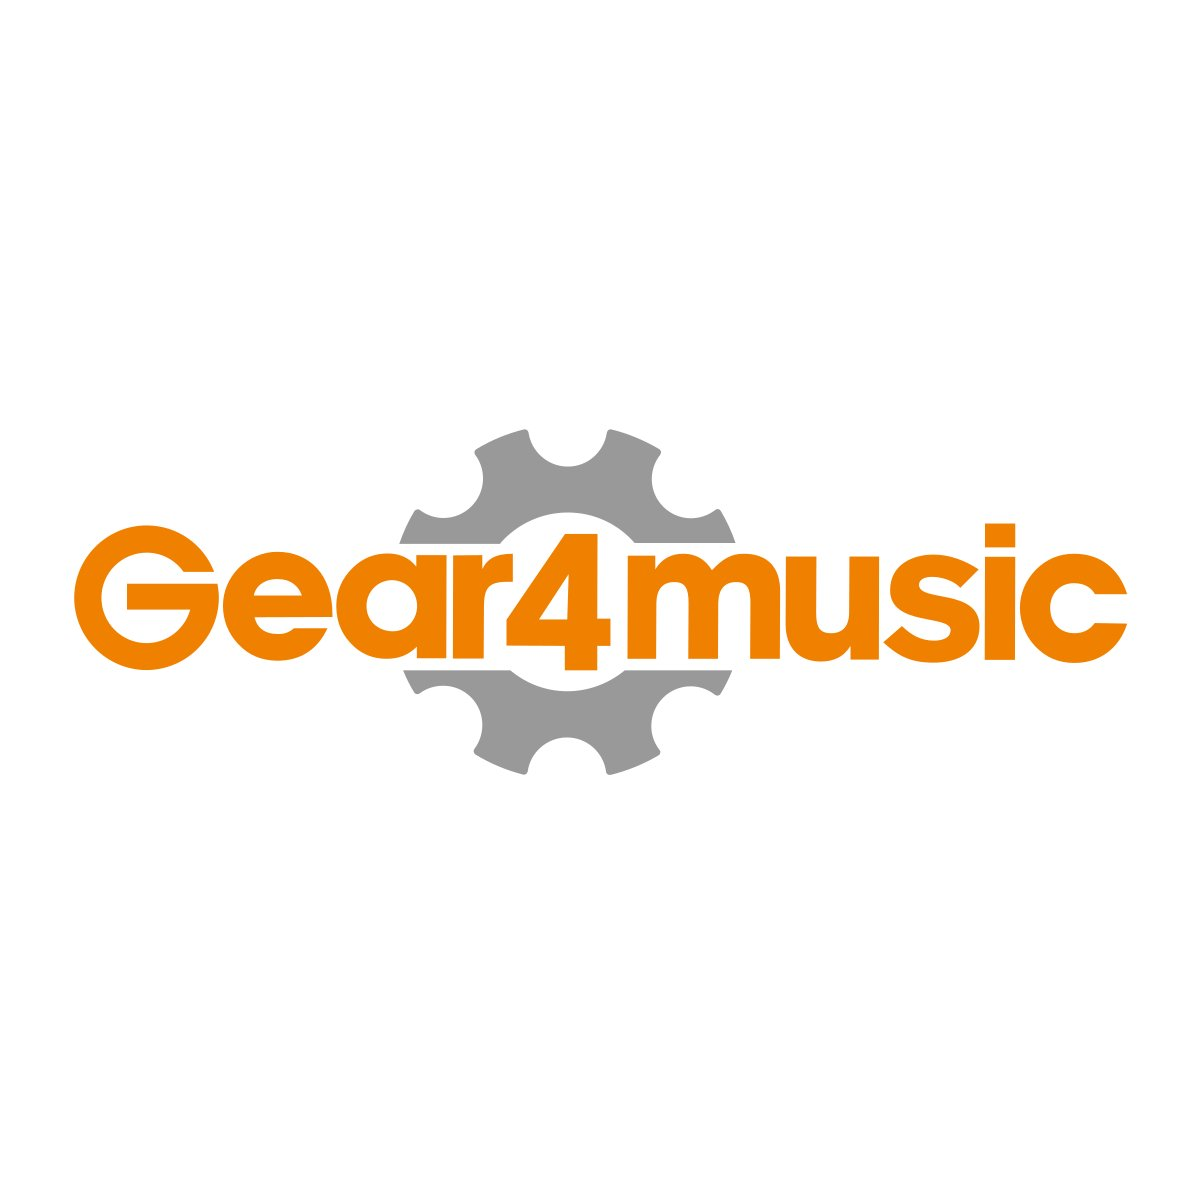 Sac de supports de haut-parleur par Gear4music